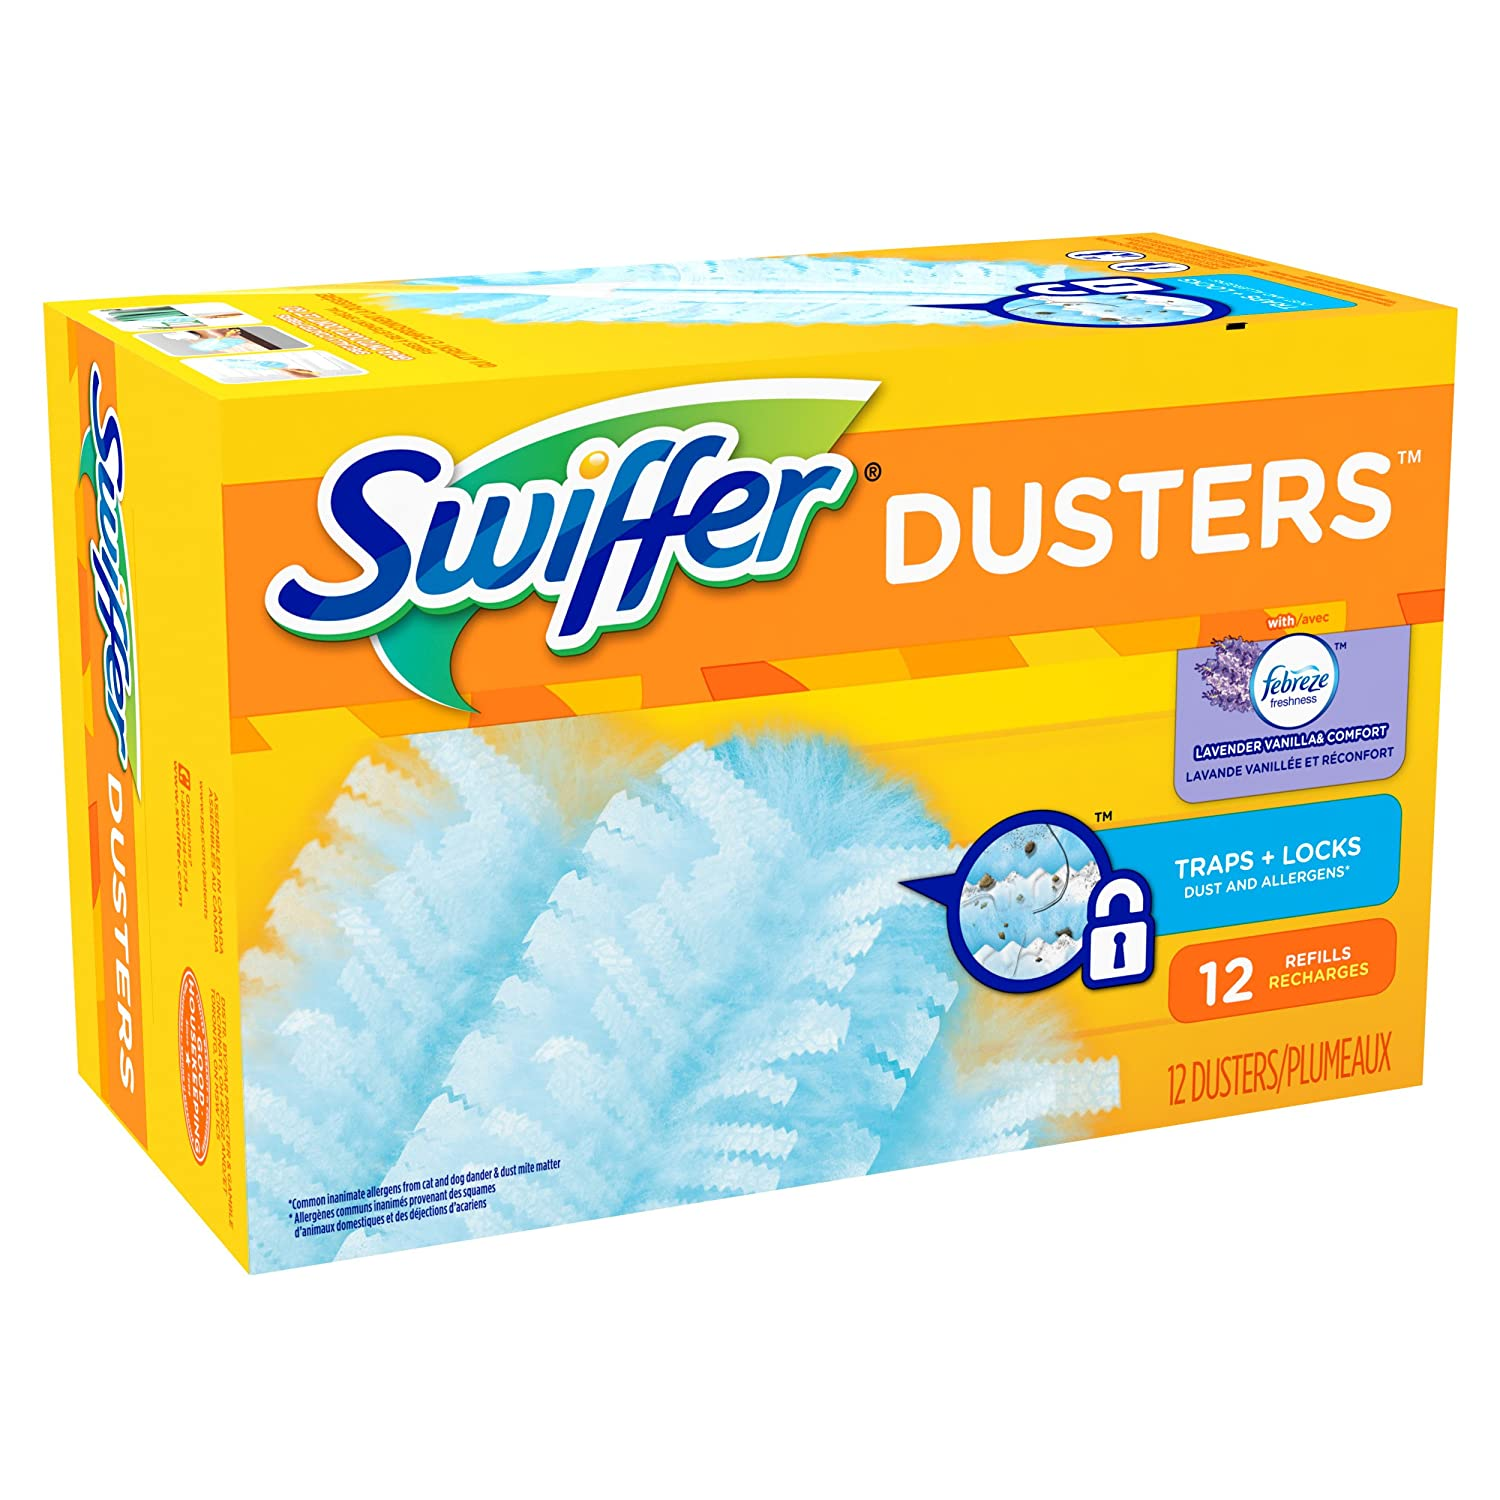 Swiffer 180 Dusters Refills with Febreze Lavender Vanilla & Comfort Scent, 12 Count by Swiffer B008R7CRPO